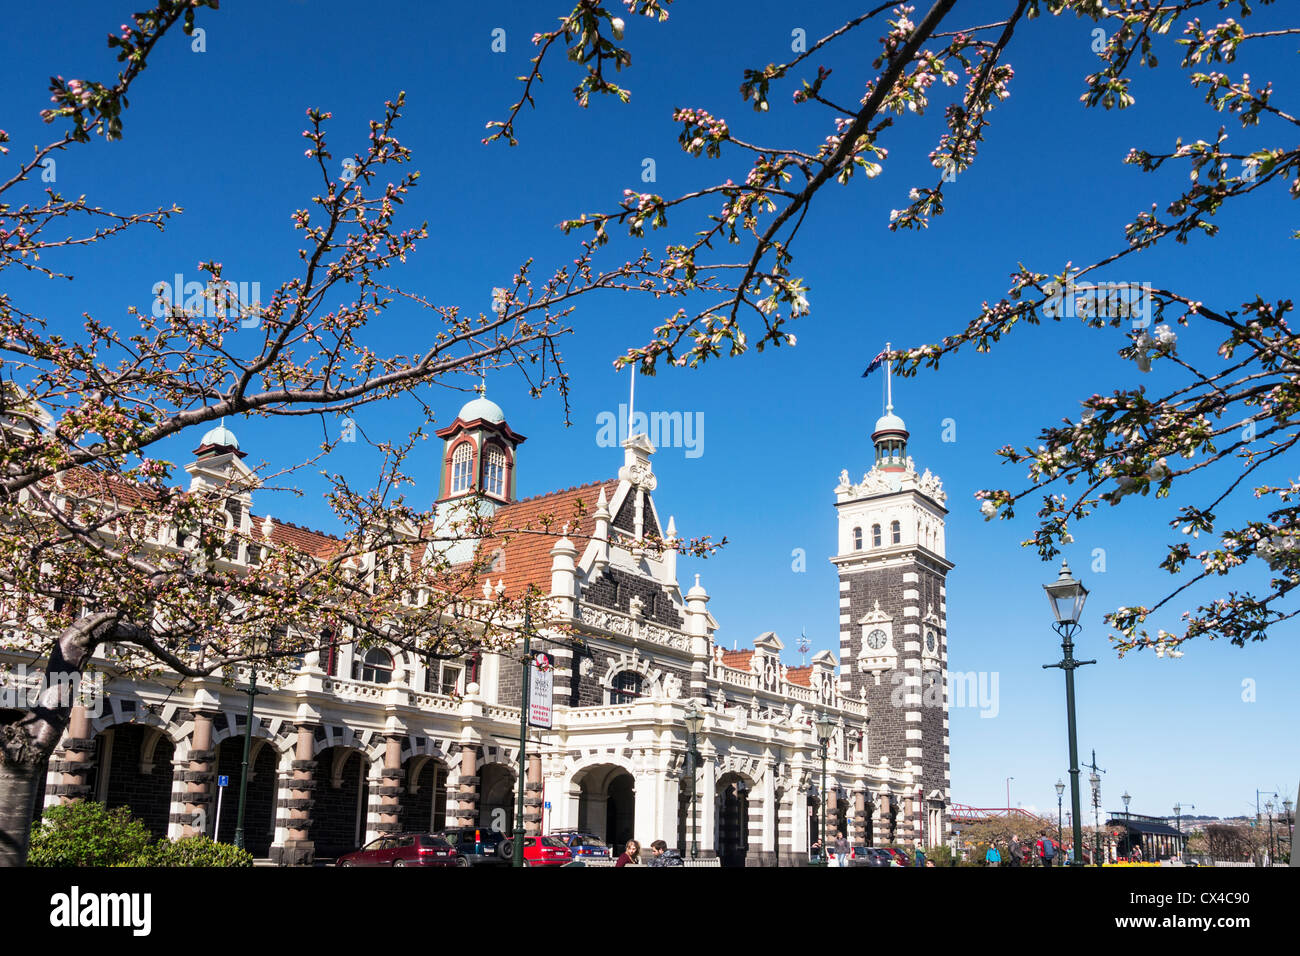 Dunedin Railway Station and spring blossom. - Stock Image